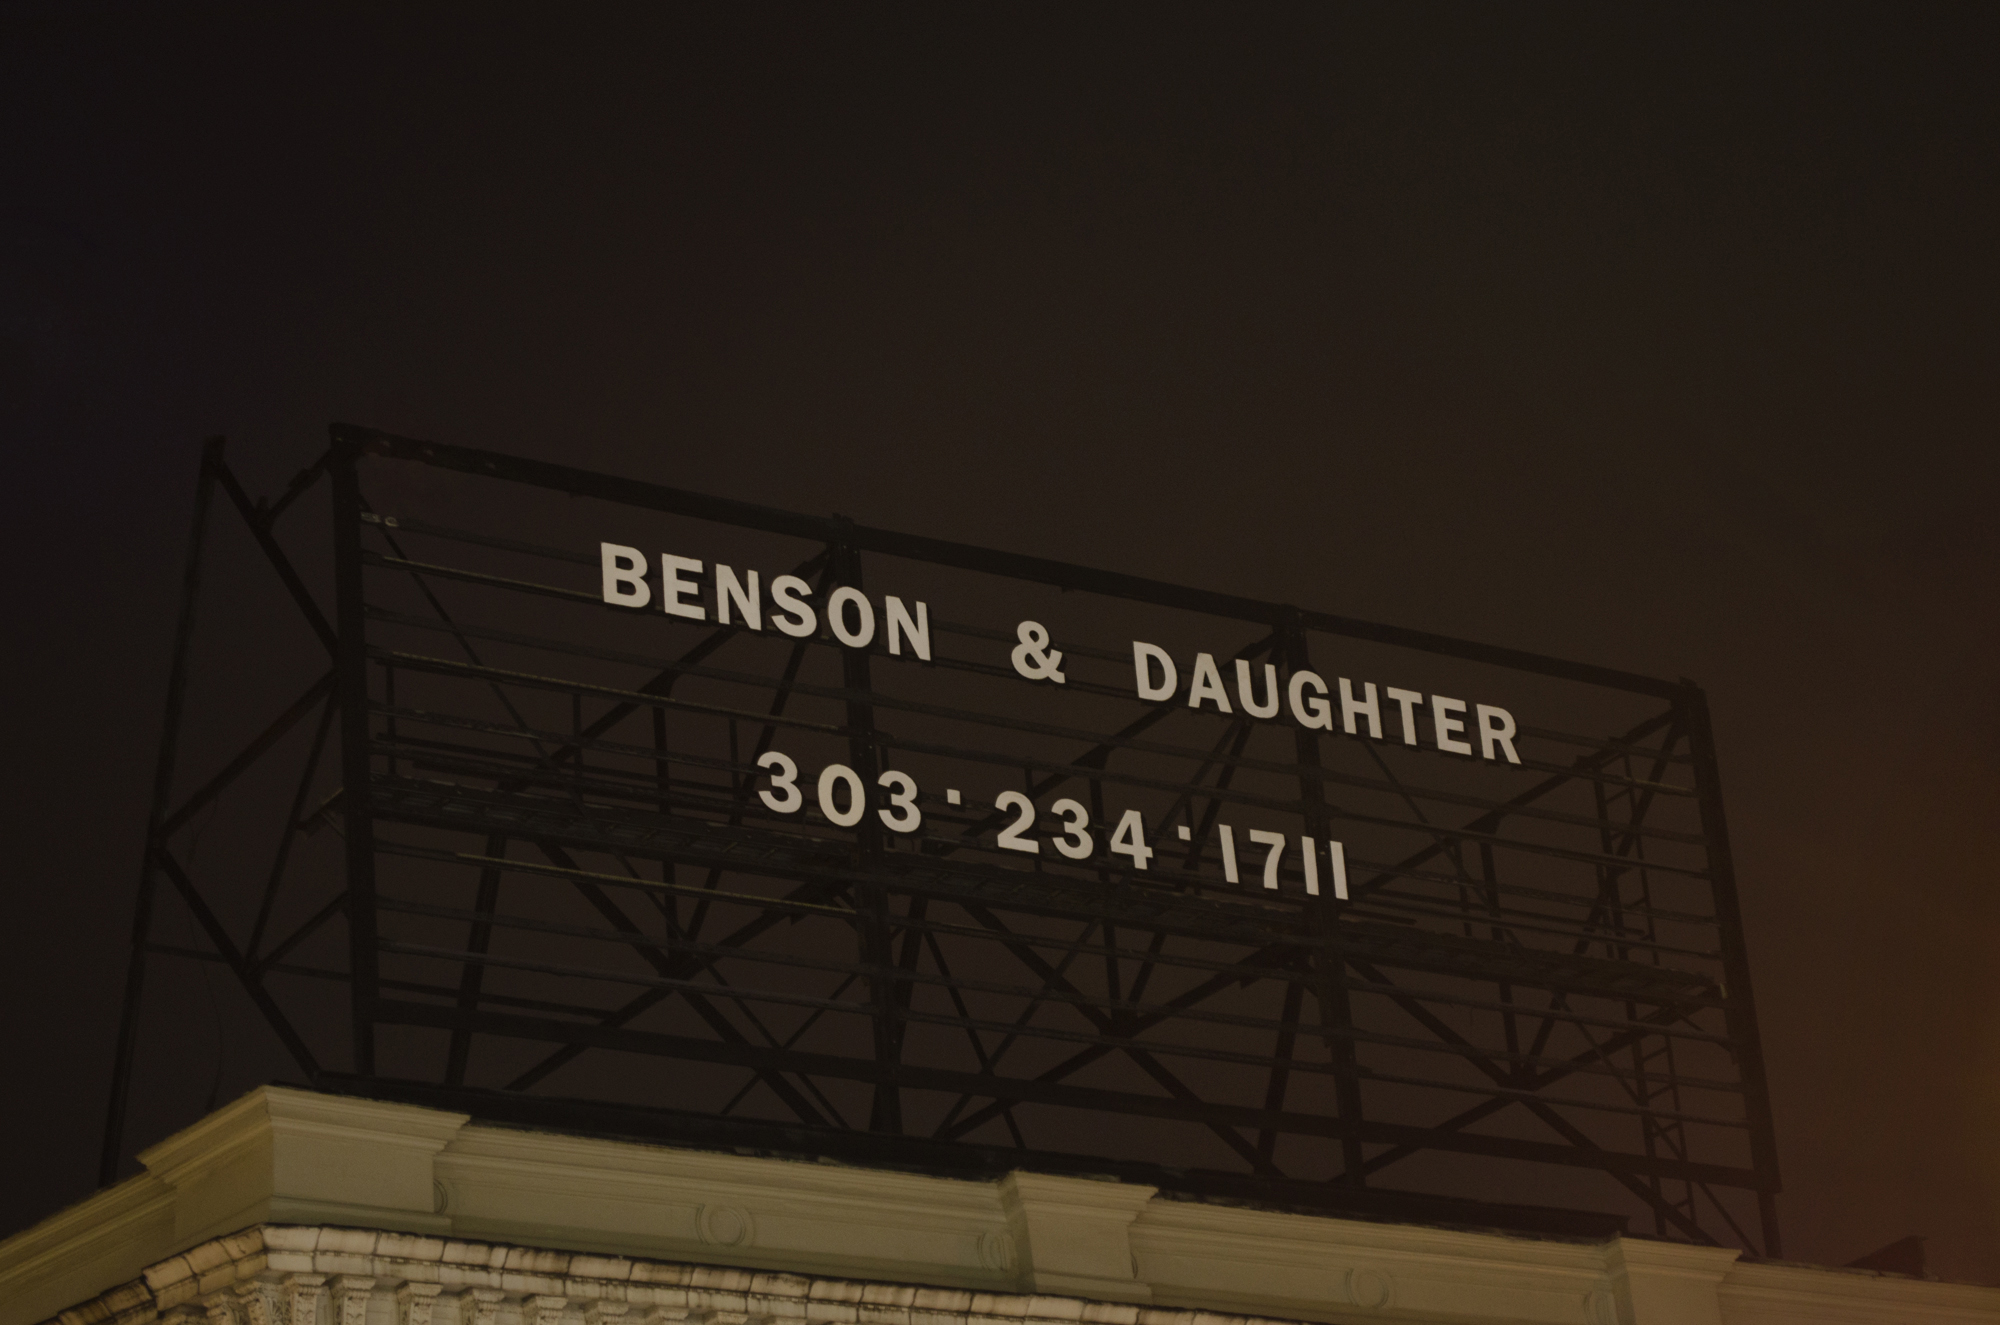 Benson & Daughter